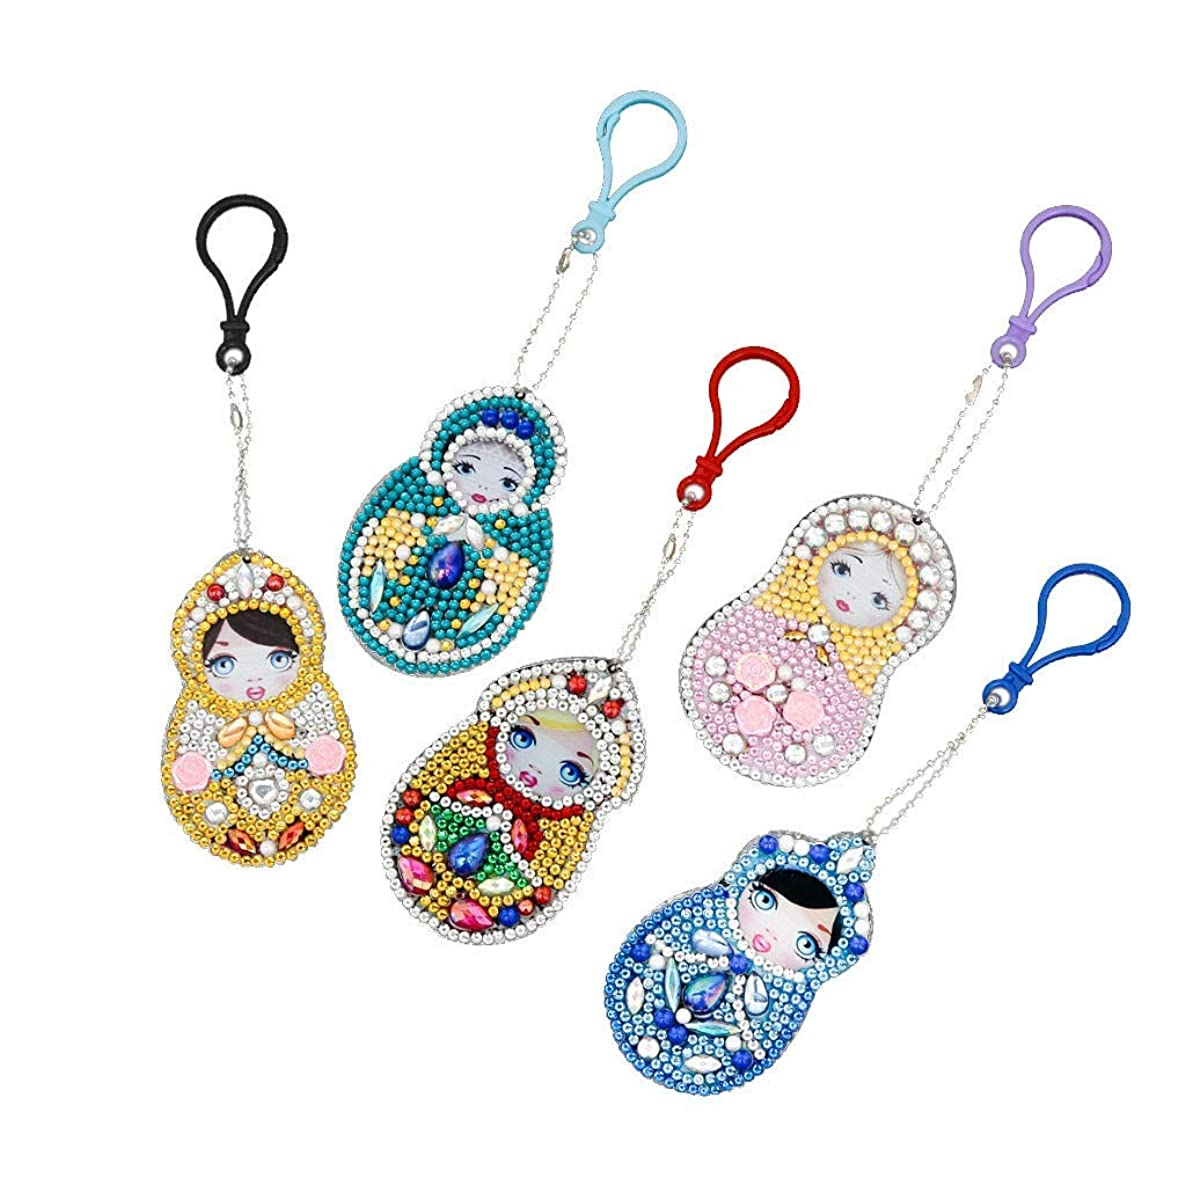 5D DIY Diamond Painting Kits for Kids and Adult,Keychain Pendant Kits for DIY,Russian Doll Full Drill Stick Paint with Diamonds Arts Crafts 5PCS (Russian Doll, 2.4